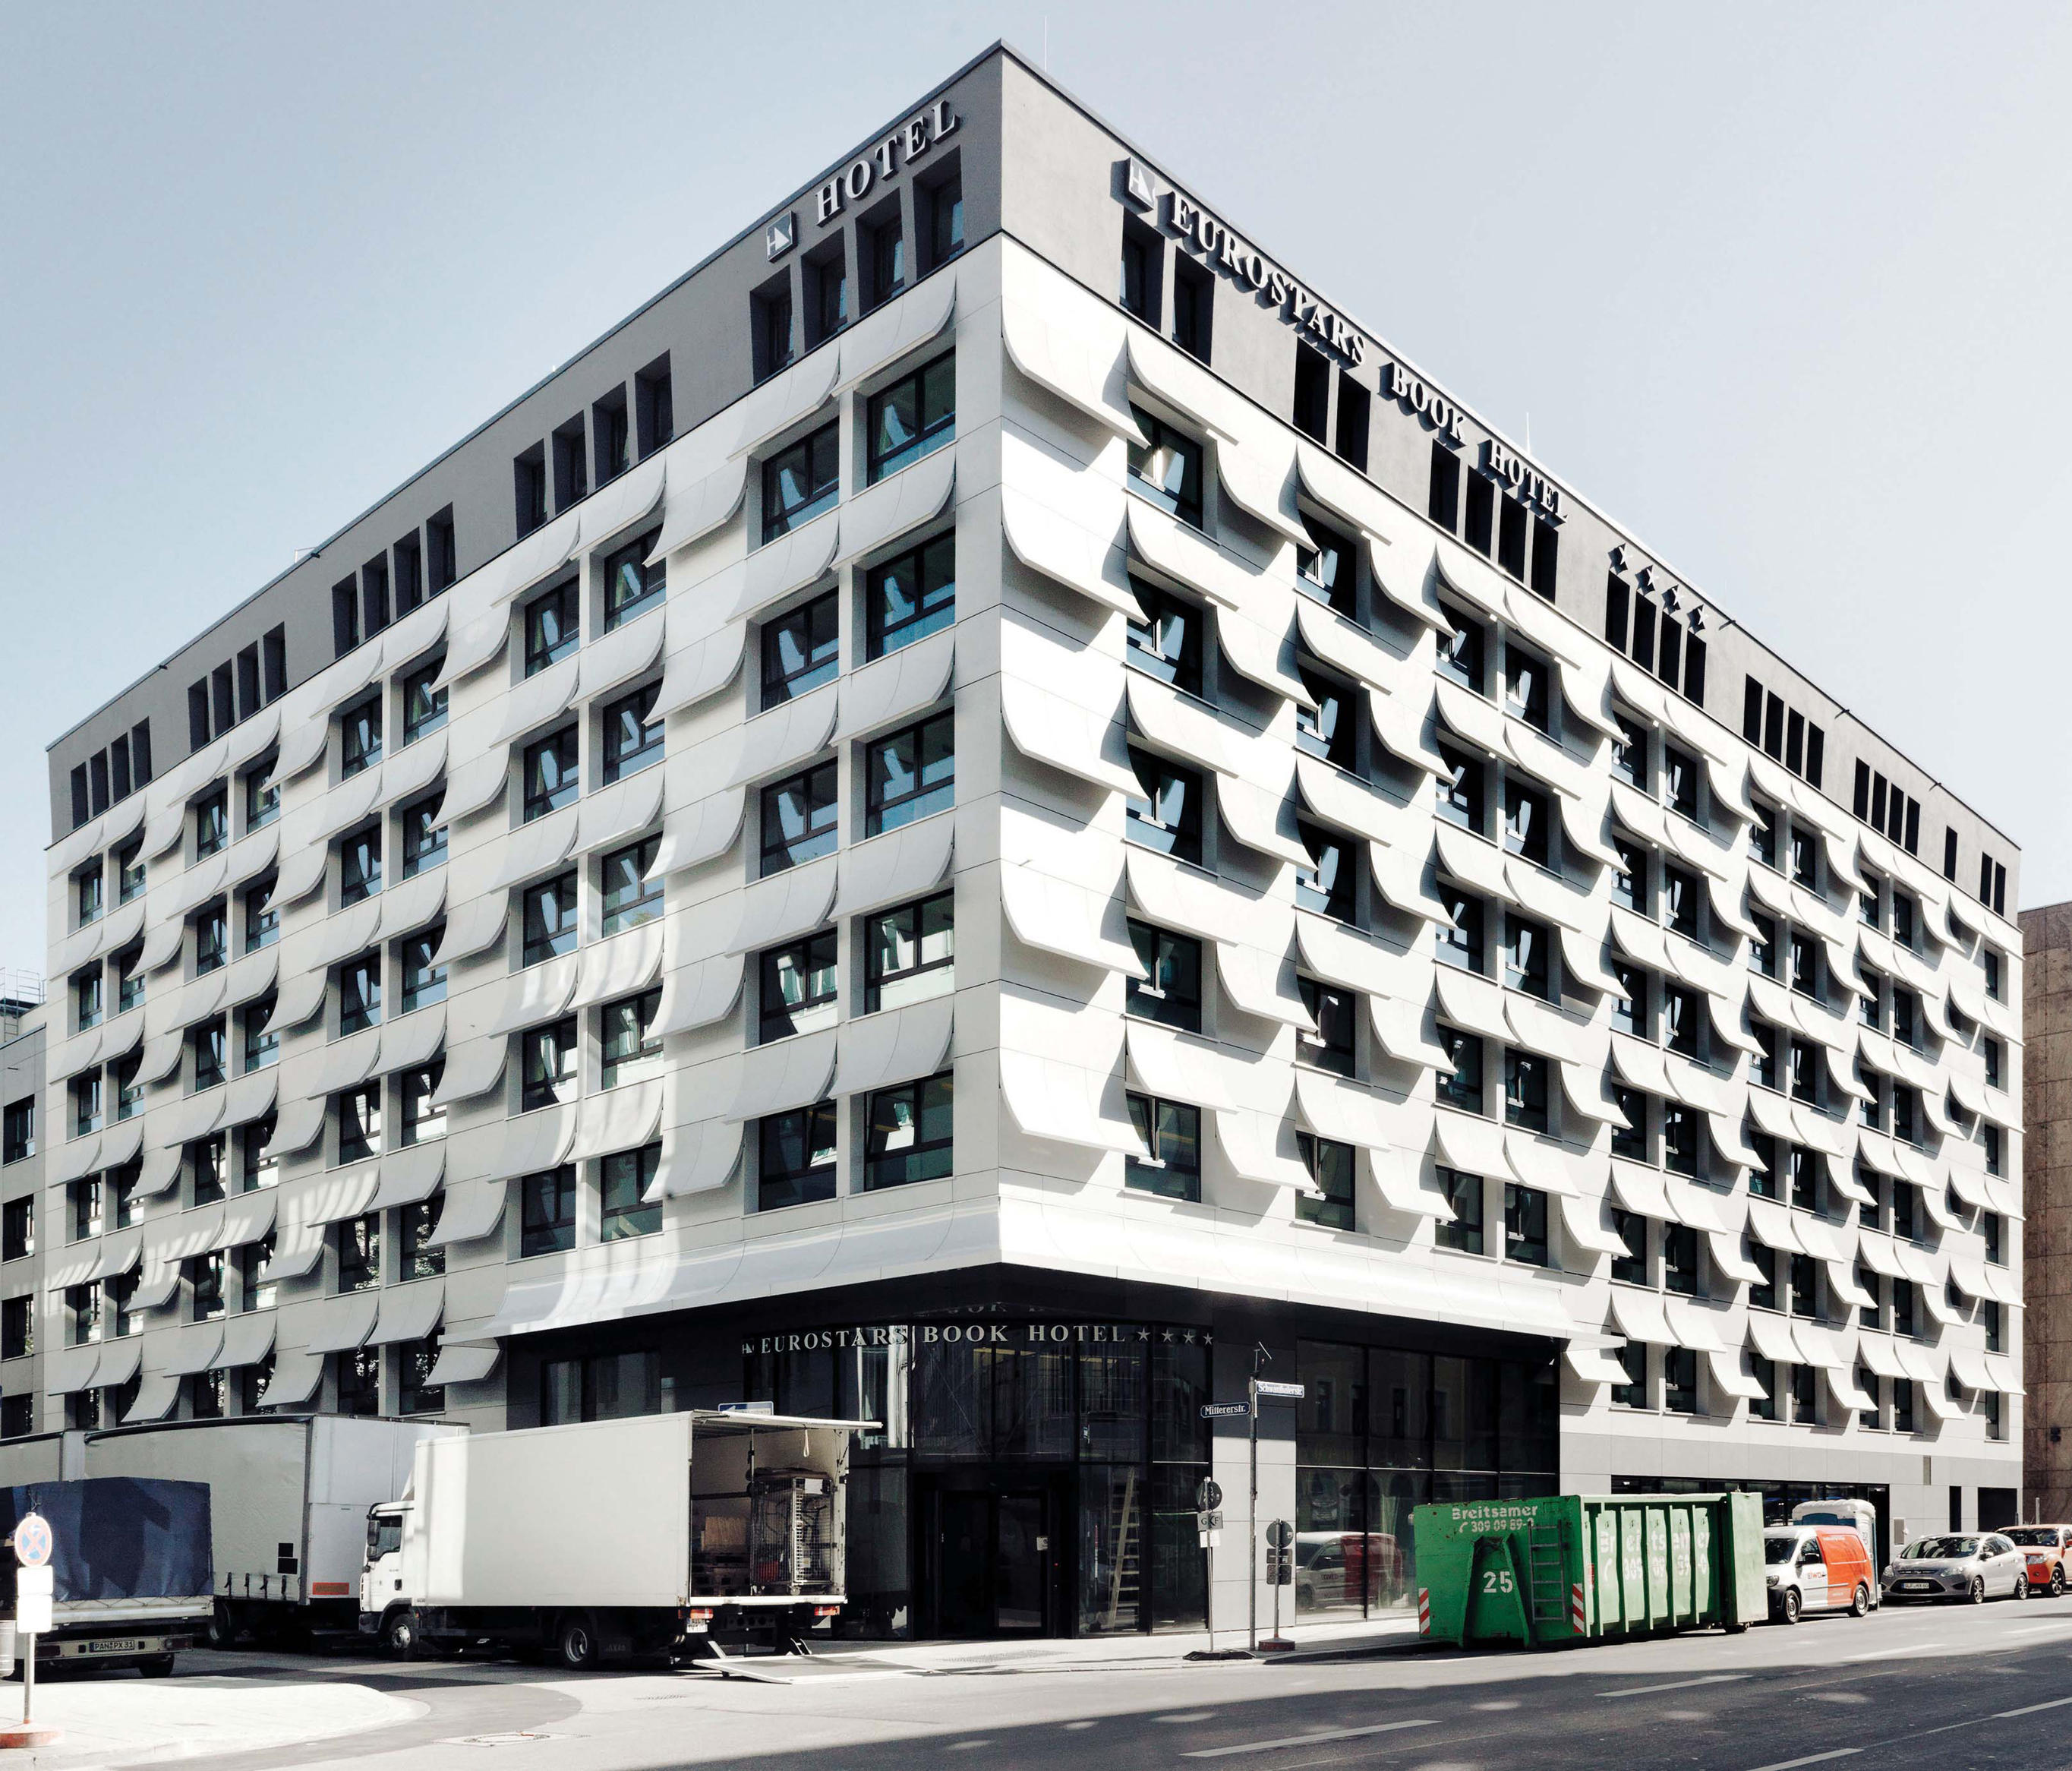 Eurostars book hotel munich facade design from rieder for Design hotel muenchen